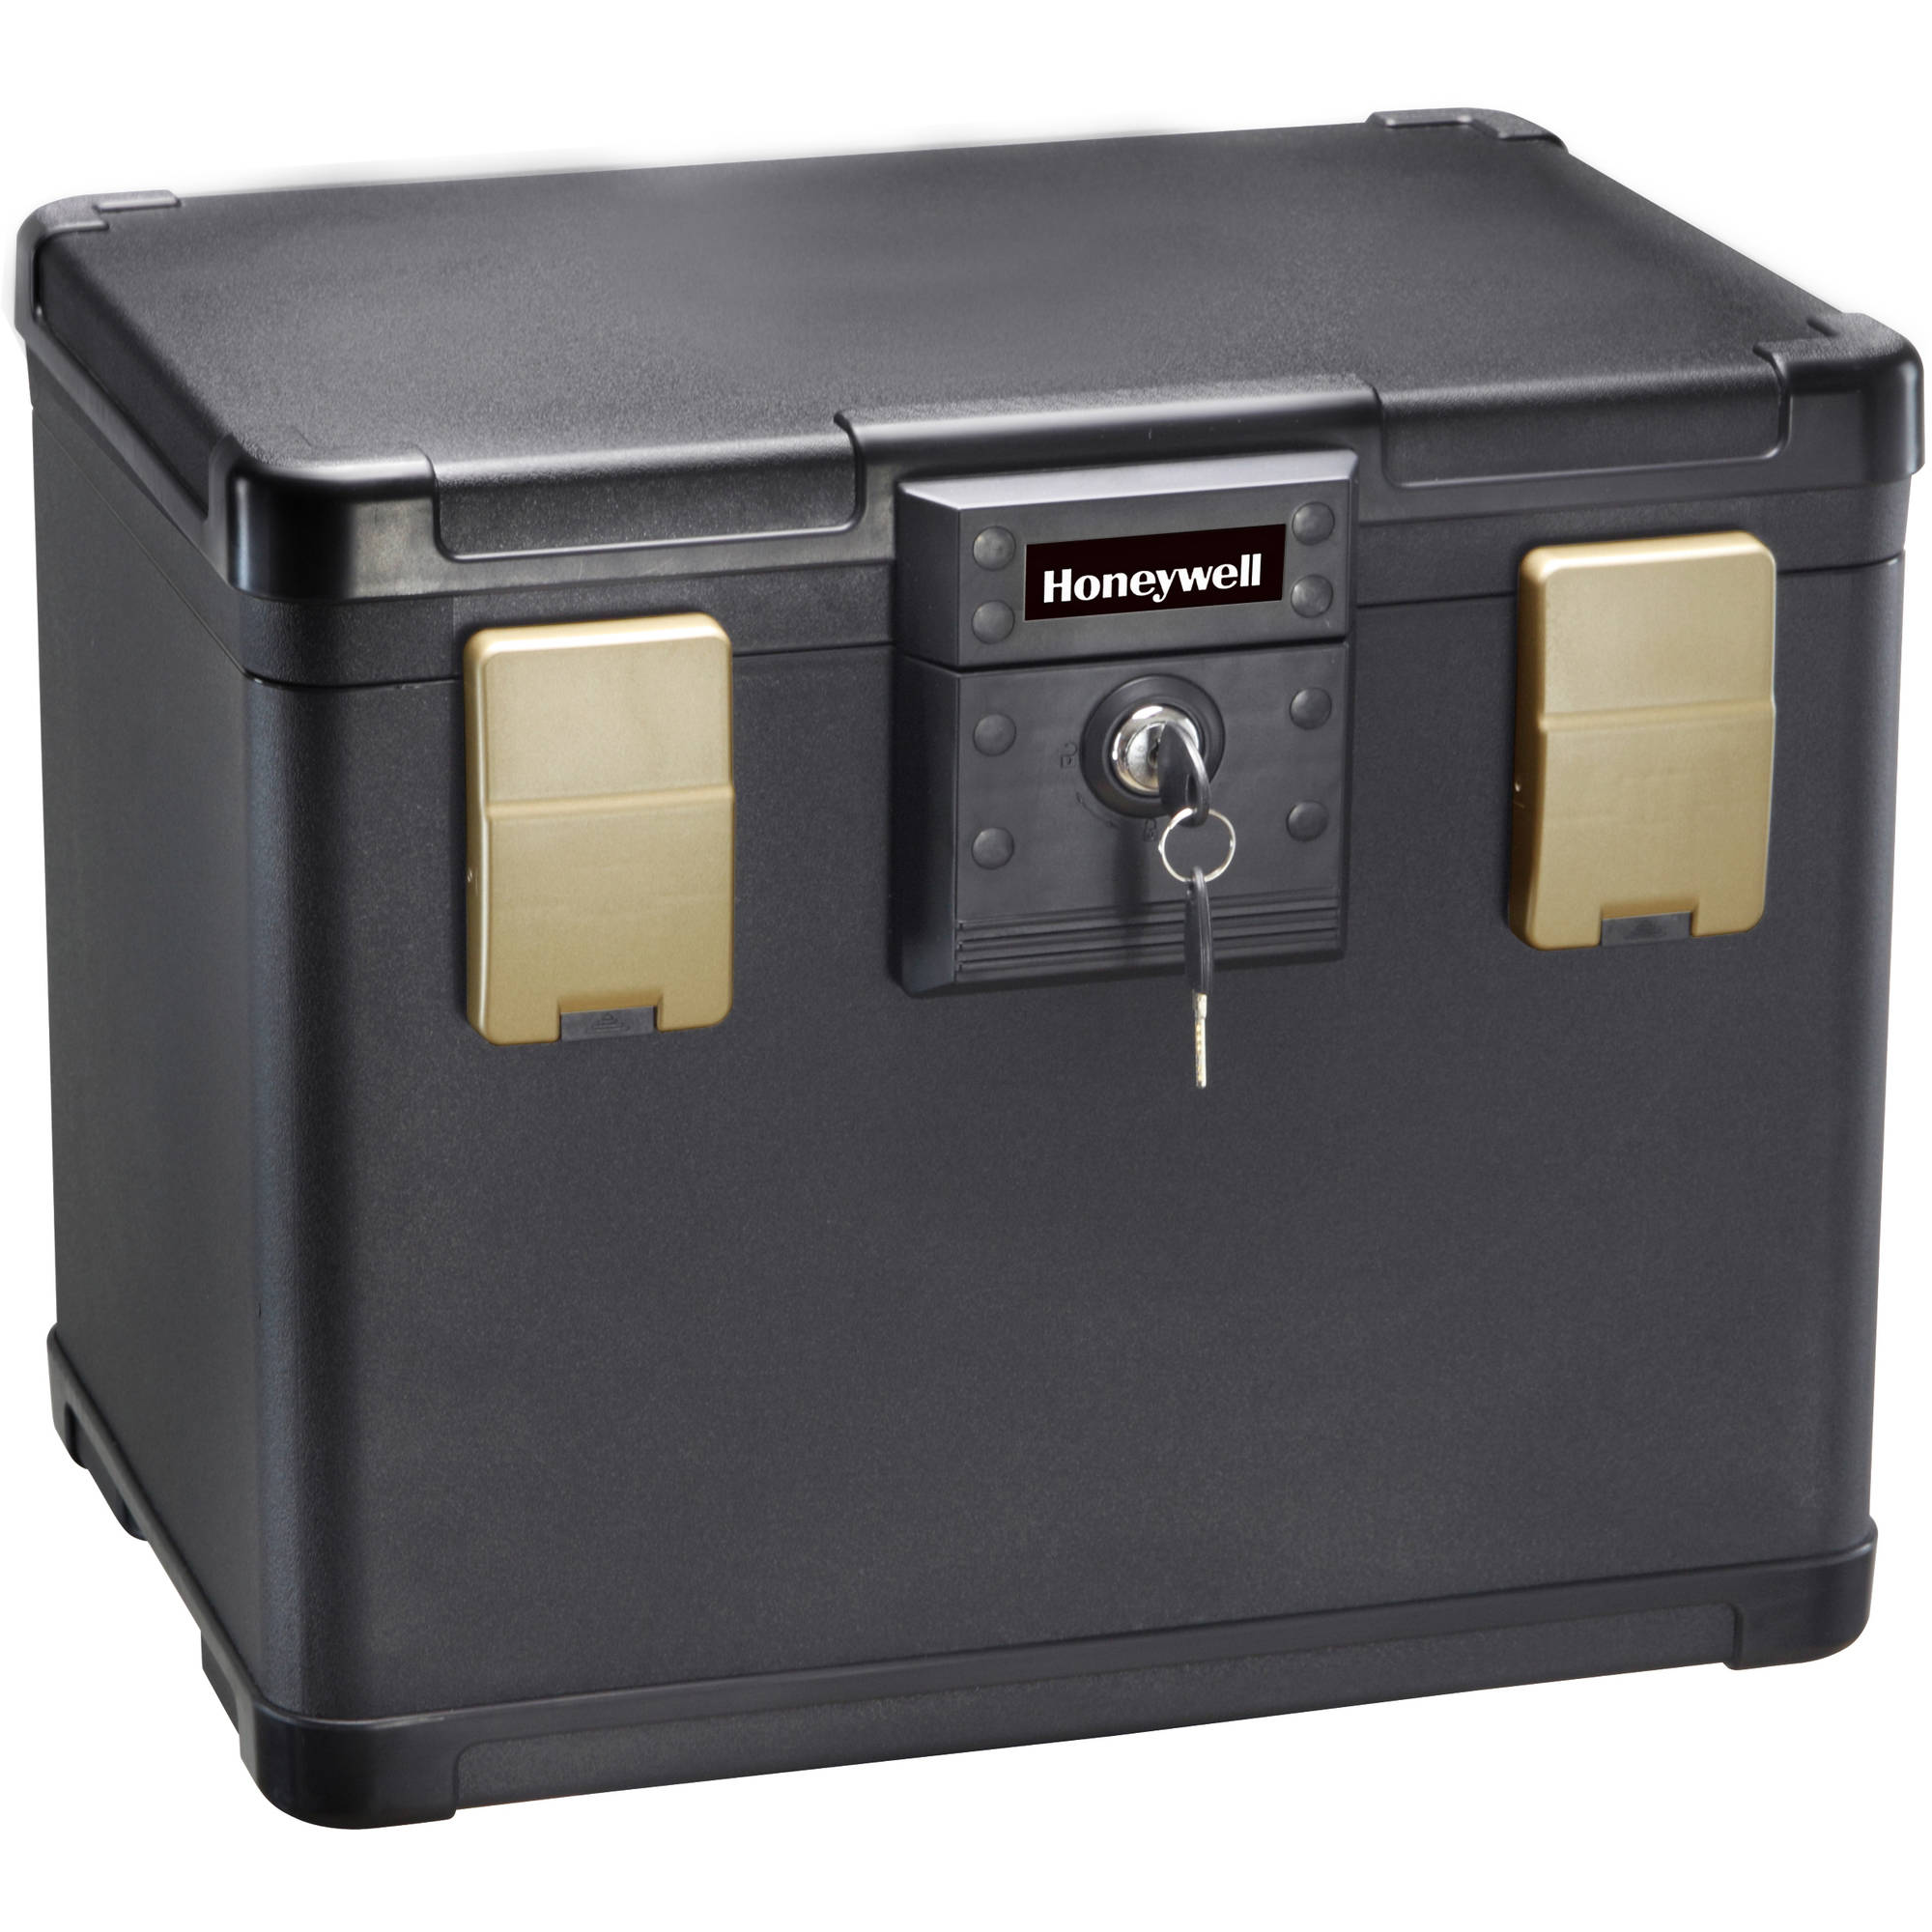 Honeywell 0.6 cu. ft. Waterproof 30-Minute Fire Chest with Key Lock, 1106